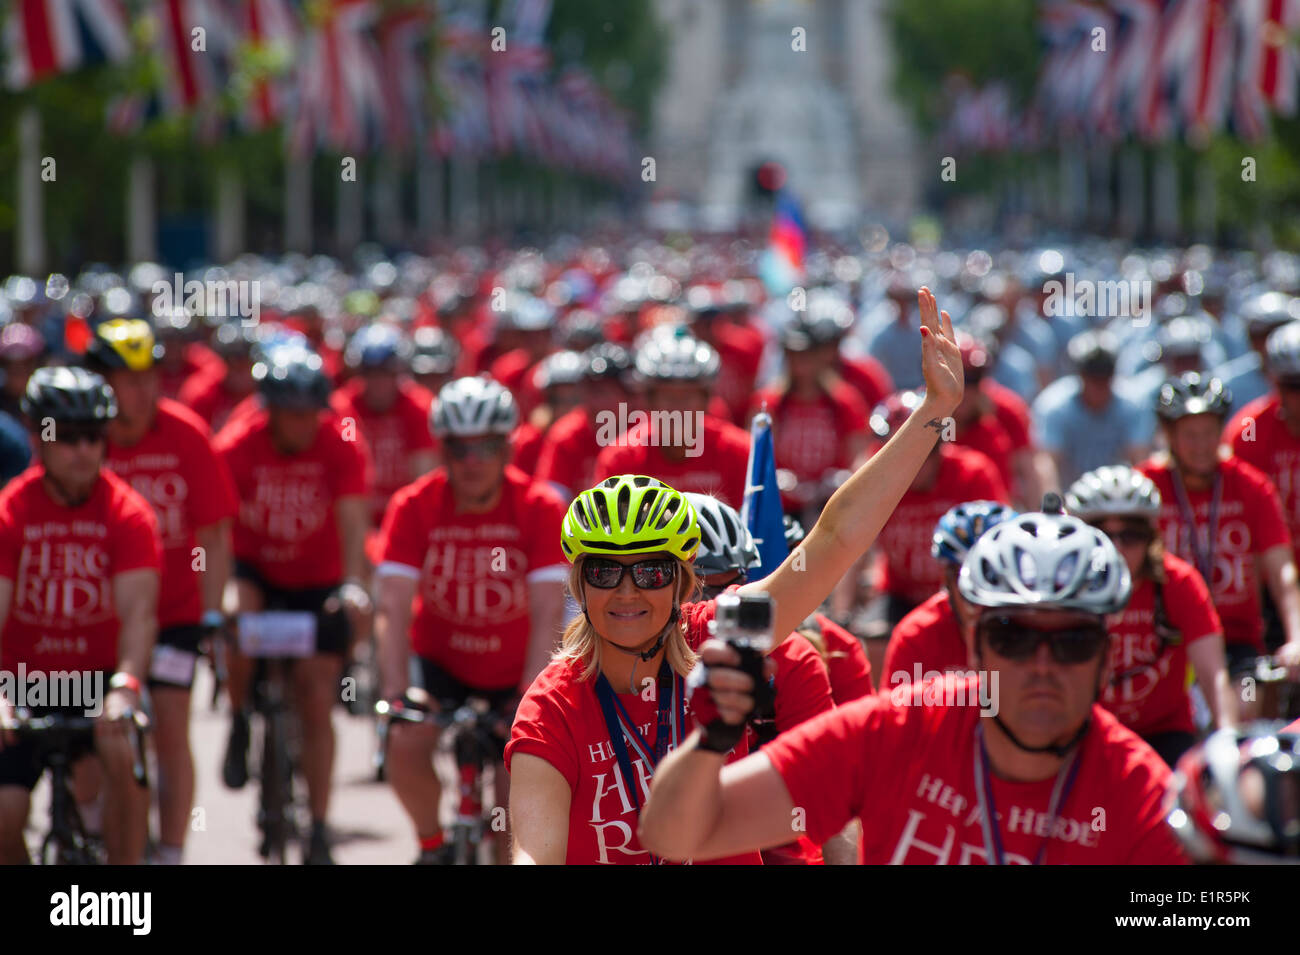 Colourful Hero Ride 2014 riders in The Mall, central London - Stock Image